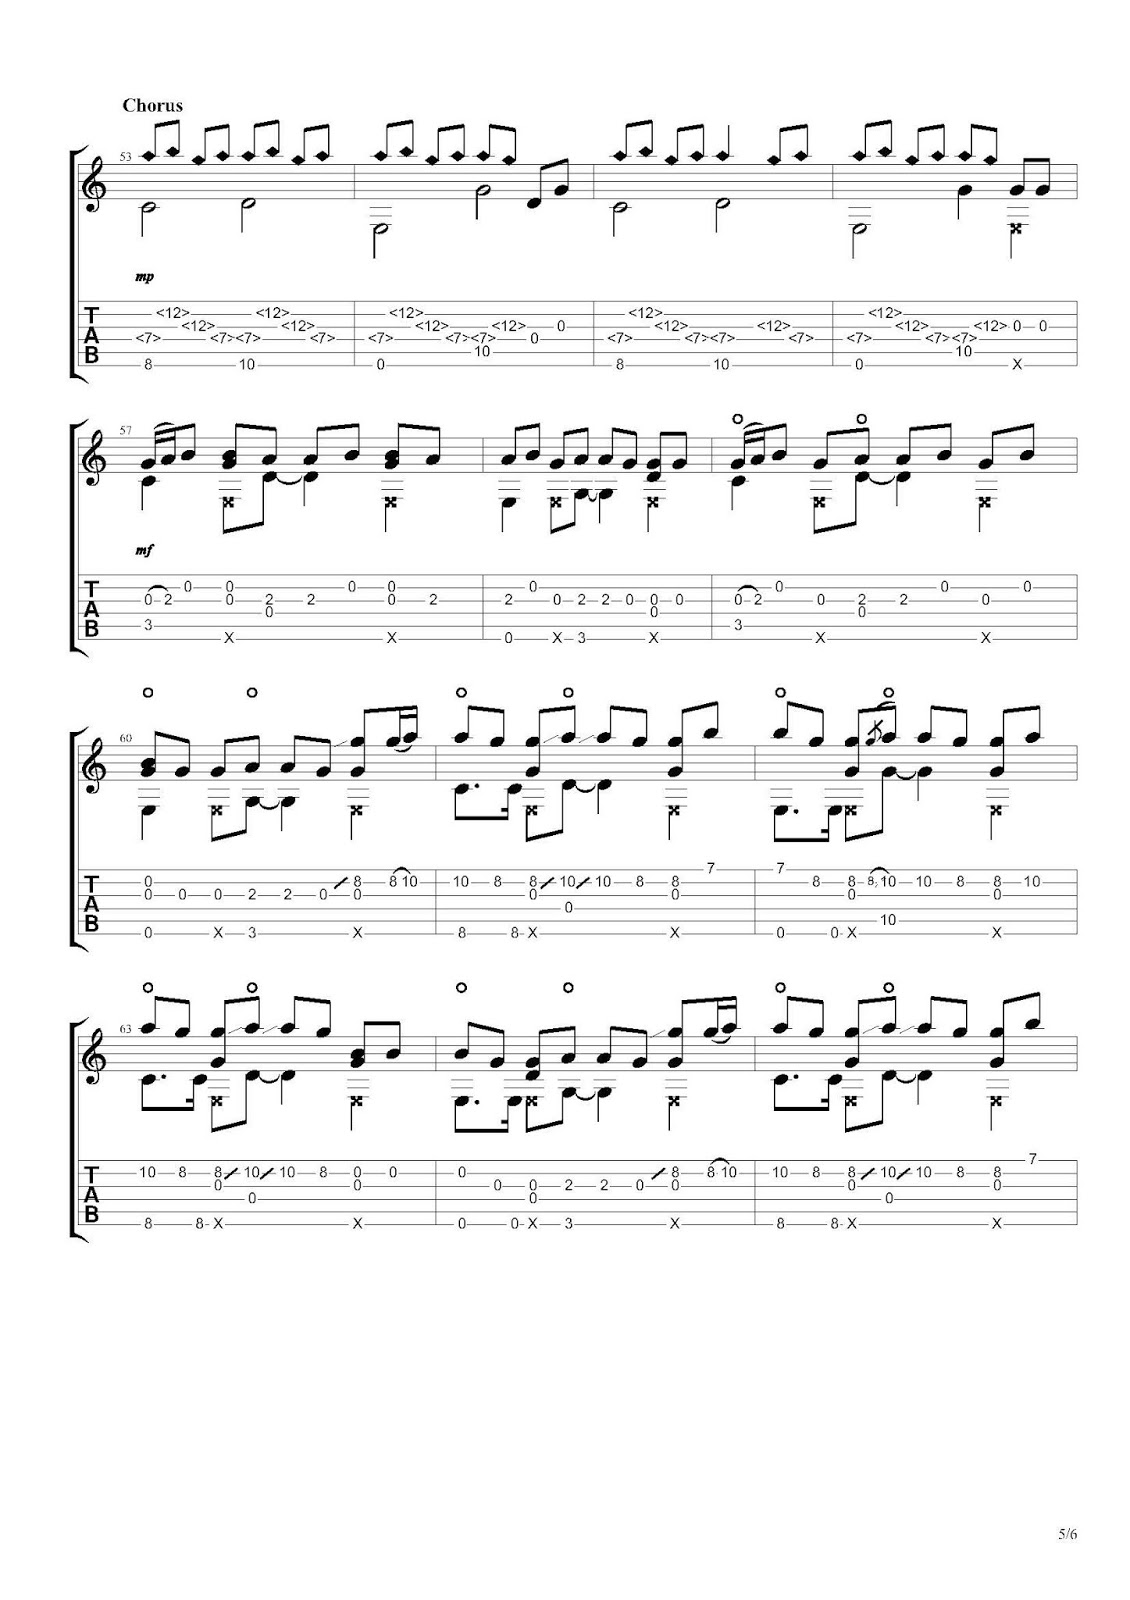 closer guitar tabs for beginners,closer guitar tabs single string,closer guitar tabs fingerstyle,closer fingerstyle tabs pdf,closer chainsmoker fingerstyle tabs,closer tab nin,closer tab kings of leon,chainsmokers closer bass tabs, closer chords bethel,paris chords,closer chords kings of leon,closer chords piano,closer chords travis, closer chainsmokers piano chords,closer chords ukulele,closer guitar cover,closer ukulele chords easy,closer chainsmokers chords piano,closer ukulele cover,chainsmokers piano chords,closerchords,closer chords jp cooper,closer chords neyo,closer chords lifepoint,closer chords tegan and sara,chainsmokers something just like this chords, closer chords hillsong,closer chords nin,closer chords nine inch nails,7 years chordify,something just like this chordify,needtobreathe testify piano,closer ukulele chords bethel,closer nine inch nails ukulele chords,close ukulele chords nick jonas,closer ukulele chords tegan and sara,the chainsmokers closer,chainsmokers songs download, close lyrics,the chainsmokers collage,walk off the earth closer,so baby pull me closer mp3 download,closer lyrics download,closer lyrics meaning,charan andreas,closer spotify,closer music only,chainsmokers closer cast girl, the chainsmokers don't let me down,are the chainsmokers a couple,the chainsmokers closer download mp4,closer beatport,play closer online,j.fla closer,closer song download mp4,closer chainsmokers alyssa lynch,closer andrew taggart,chainsmokers charan andreas,alyssa lynch chainsmoker,closer chainsmokers charan andreas,closer song poster, genius lyrics chainsmokers,the chainsmokers bbc,closer song download for android,closer song,closer lyrics video, closer lyrics download,closer lyrics meaning,boyce avenue closer,chainsmokers closer video free download,the chainsmokers closer other recordings of this song,closer chords bethel,closer chords kings of leon,closer chords piano,closer chords travis,closer chords ukulele,closer chords hillsong,closer chords with